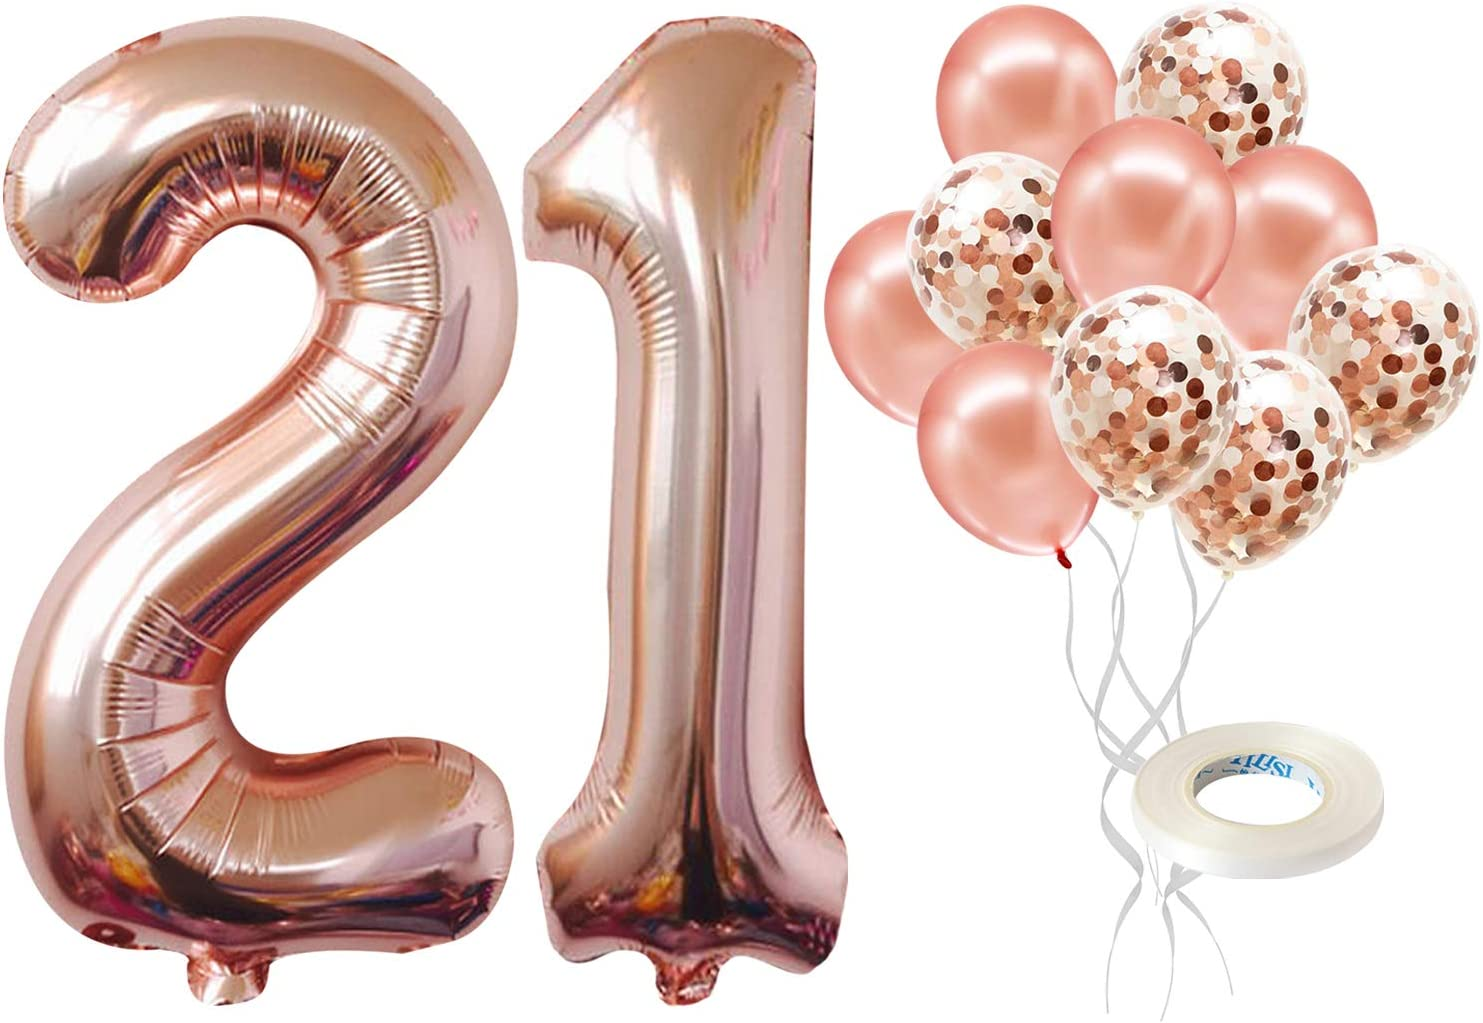 Number 21 Birthday Balloons, Rose Gold - 21 Birthday Decorations | 21st Birthday Balloons Foil Mylar Rose Gold Balloons for Rose Gold Party Supplies | 21 Birthday Party Decorations with 32 Foot String